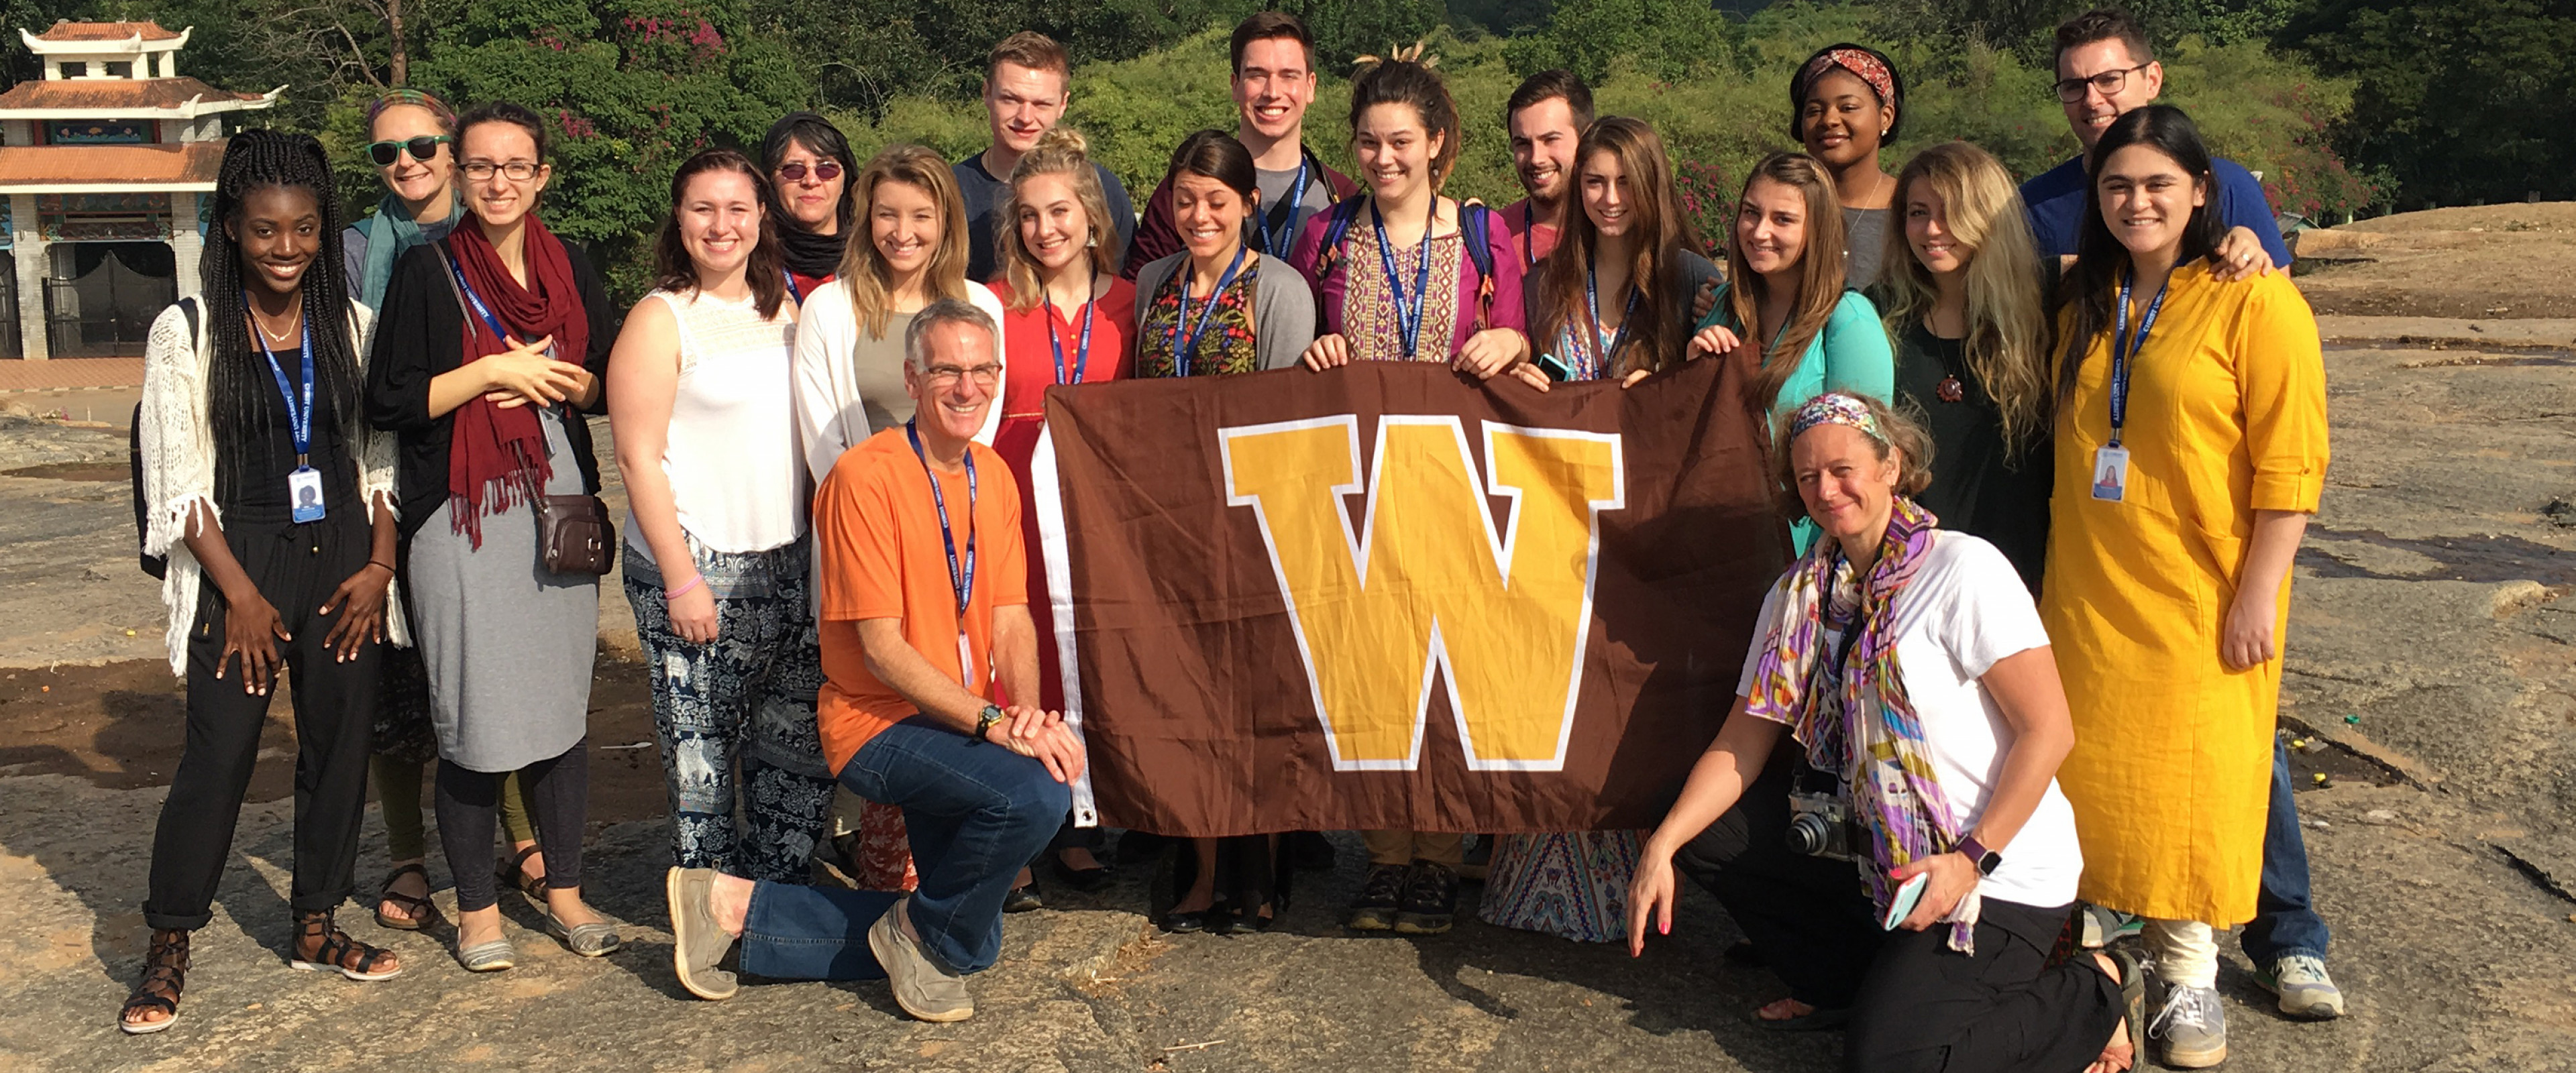 Students with W flag in India